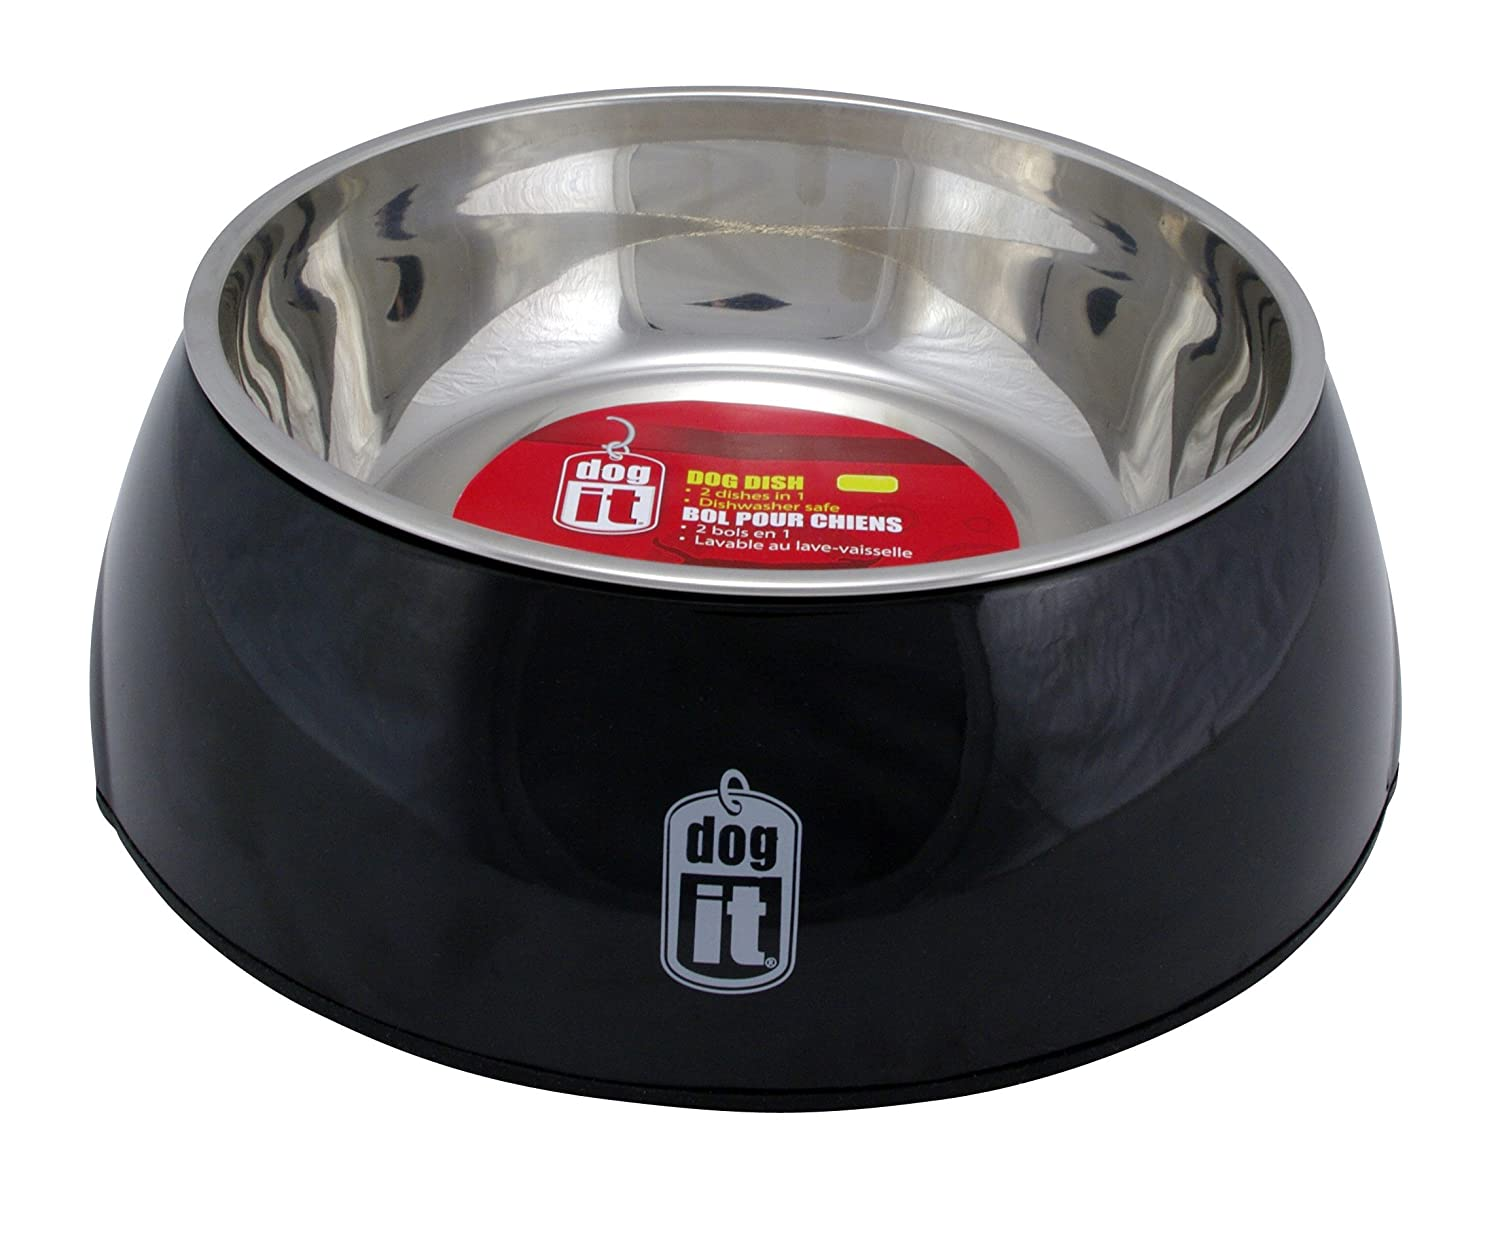 Black X-Small Black X-Small Dogit 2-in-1 Durable Bowl, Black, X-Small